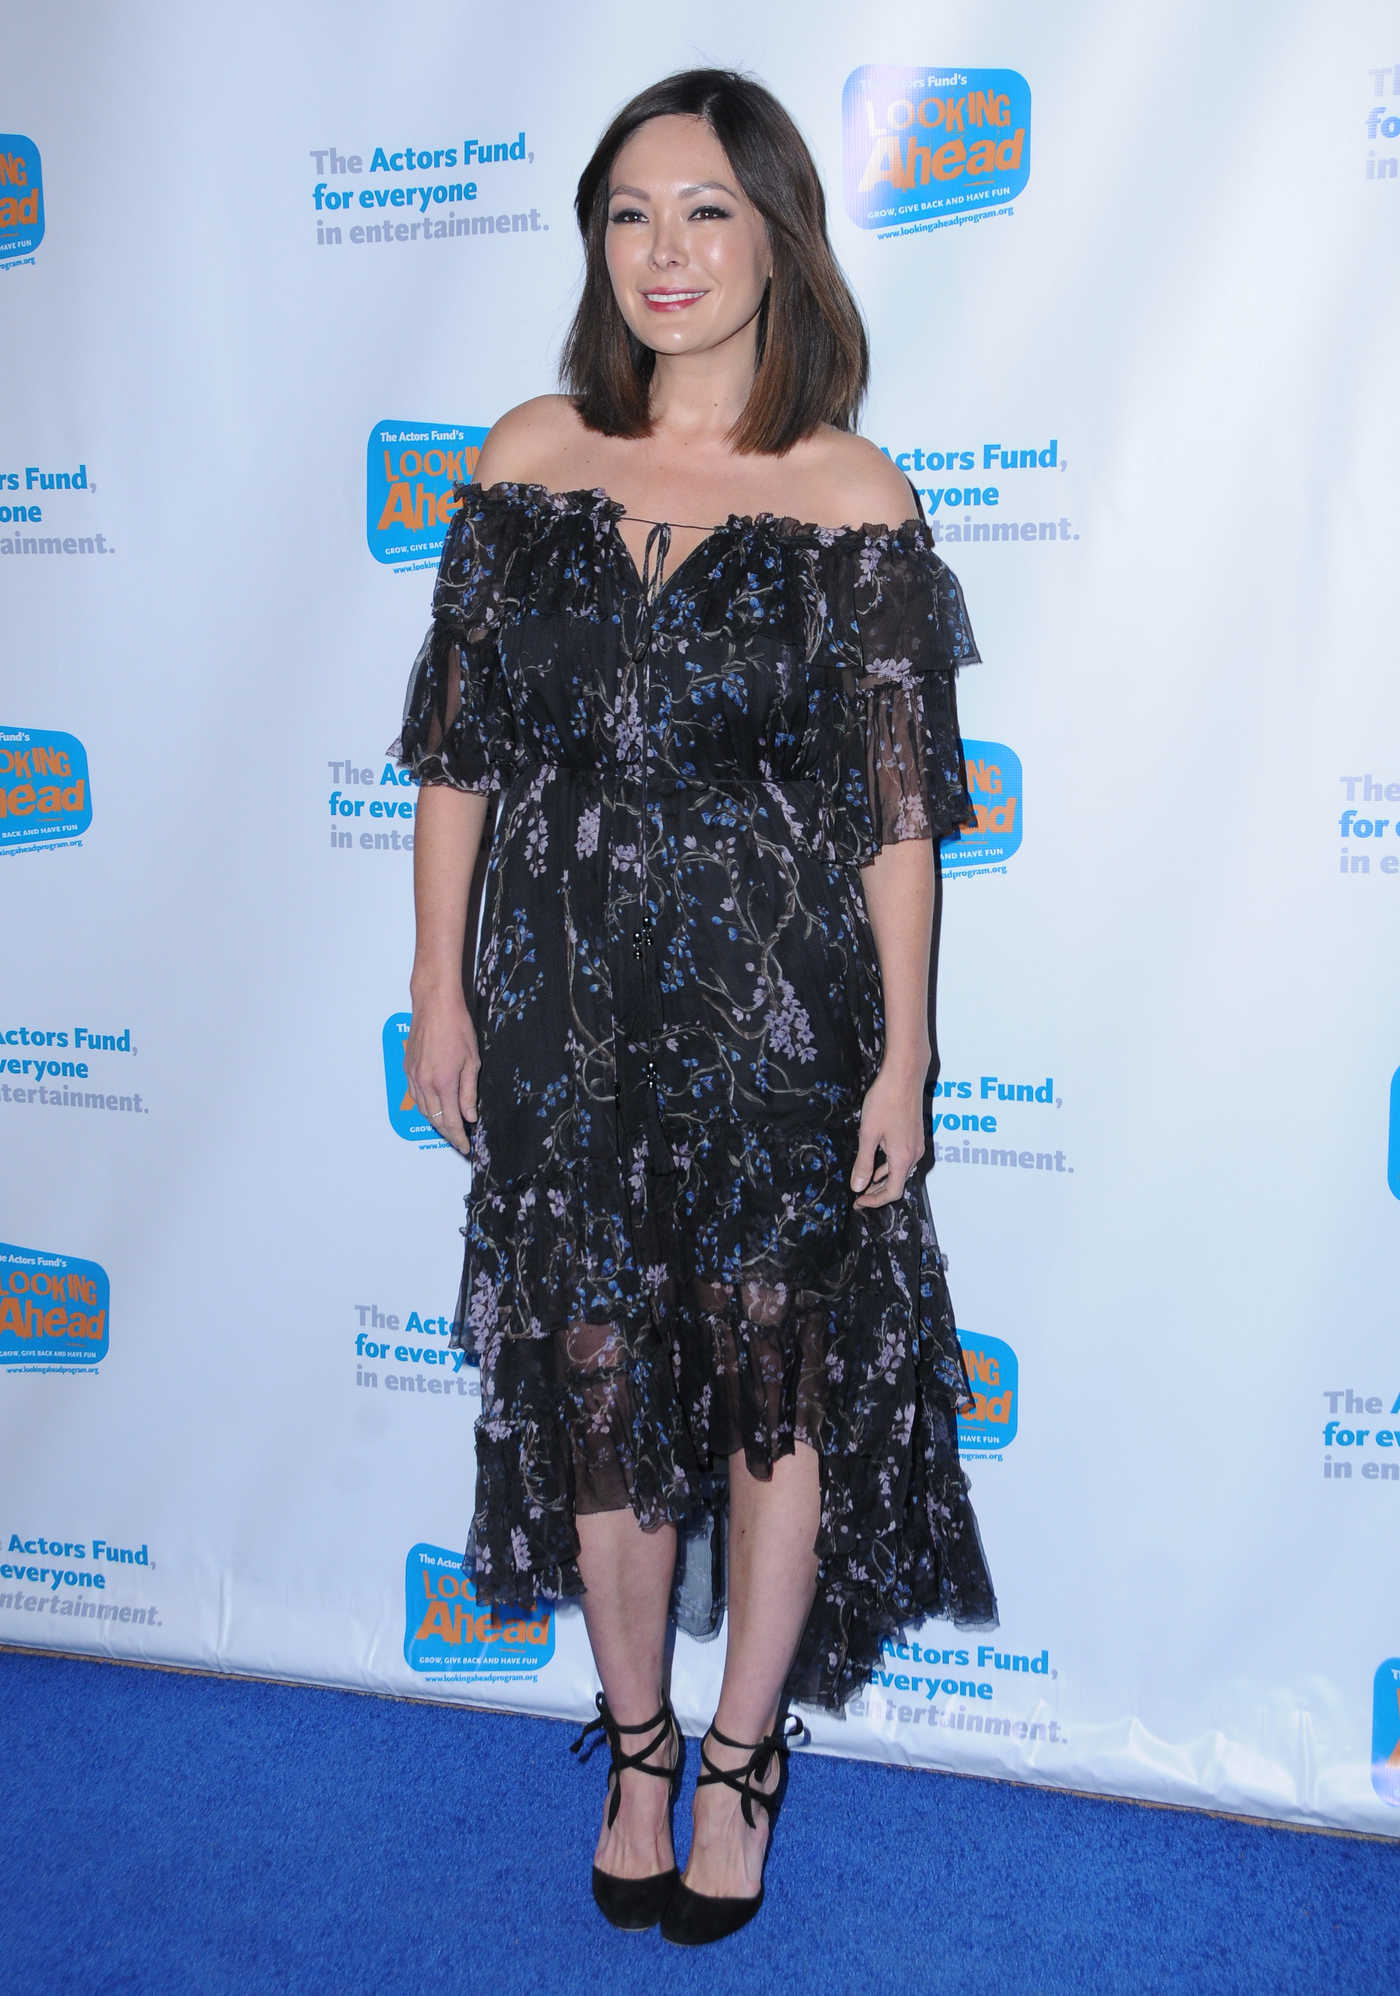 Lindsay Price at the Actors Fund's Looking Ahead Awards in Hollywood 12/05/2017